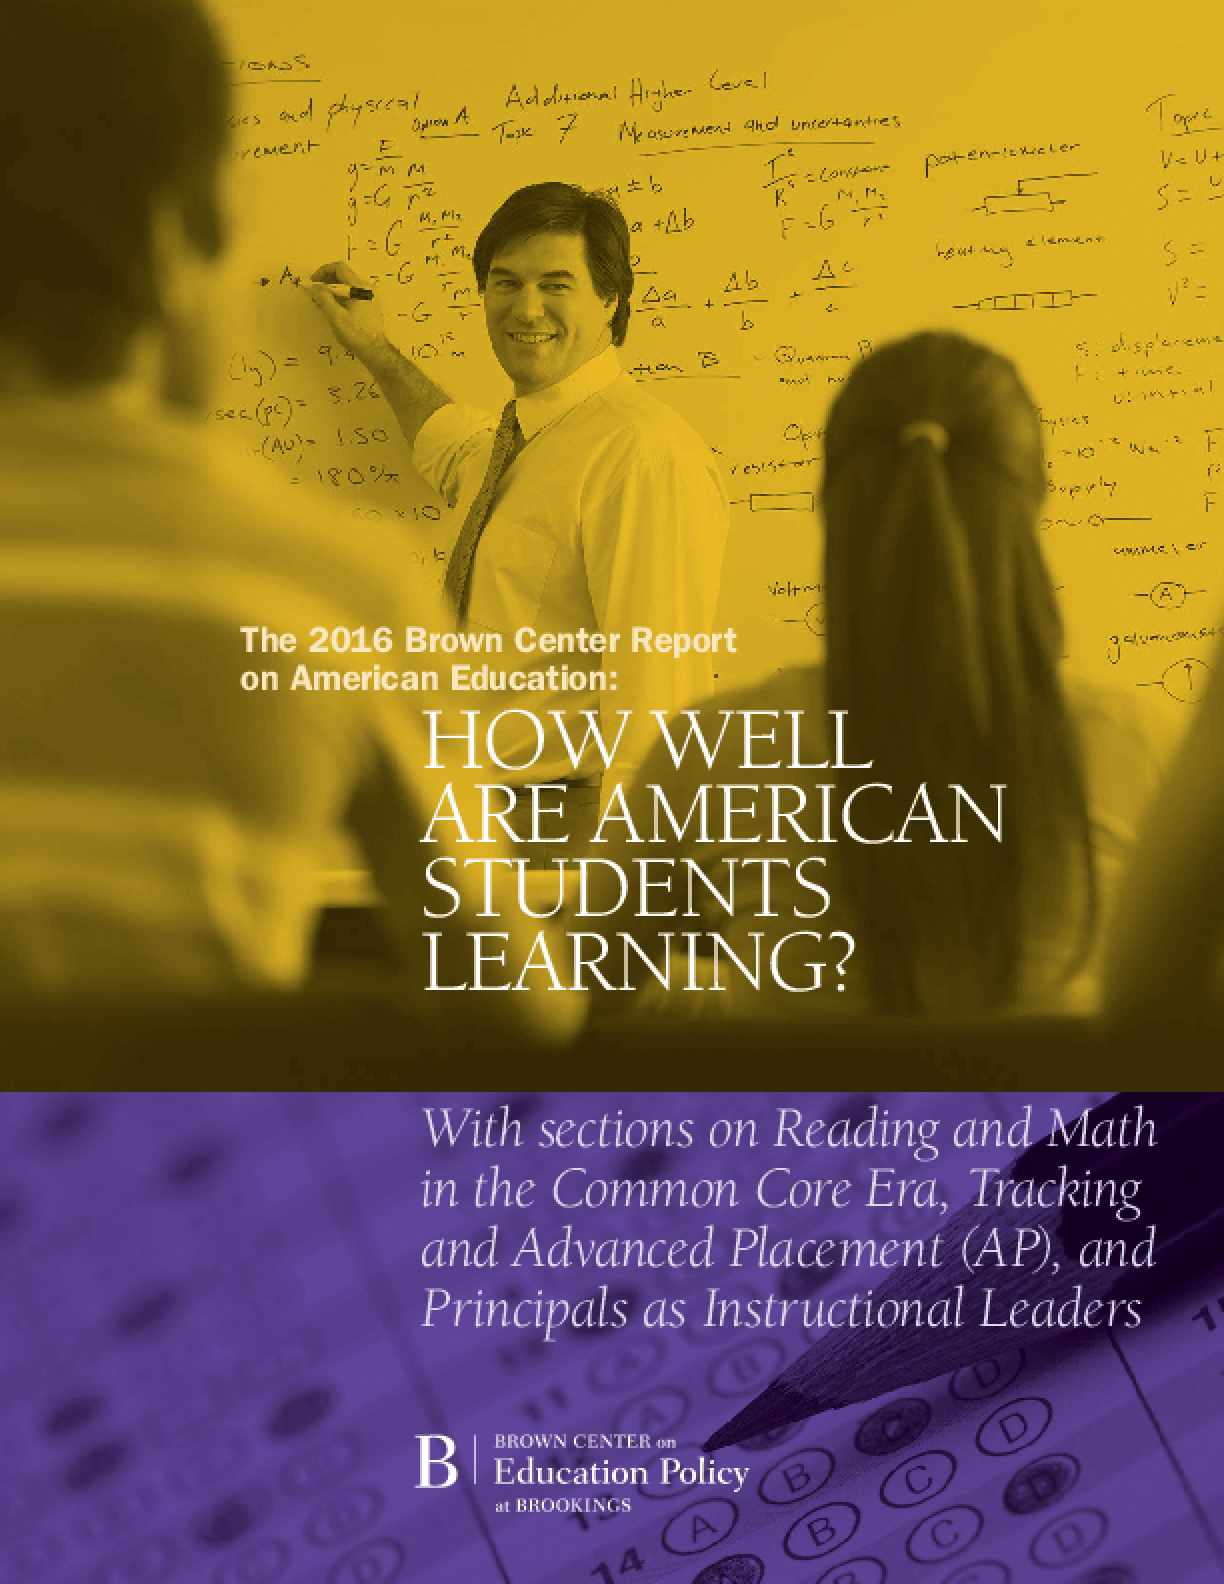 The 2016 Brown Center Report on American Education: How Well Are American Students Learning?